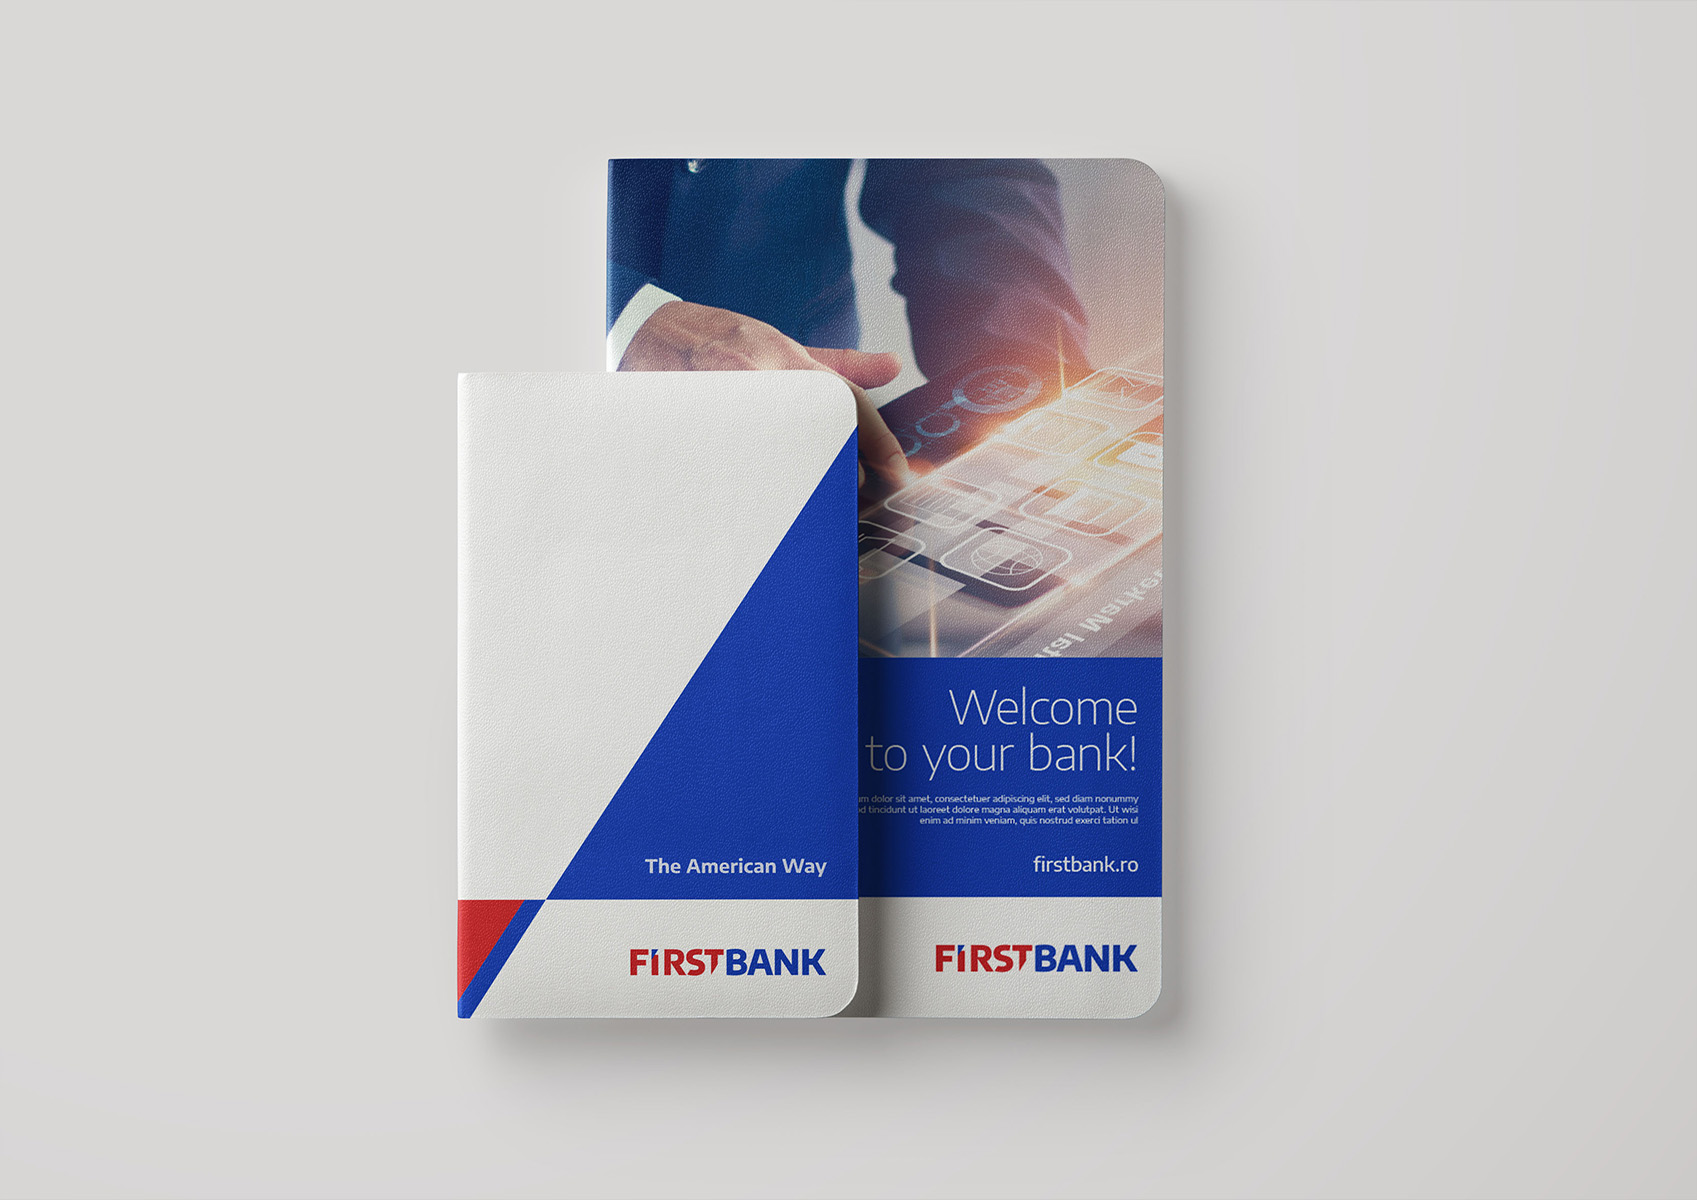 first bank portofoliu inoveo agende